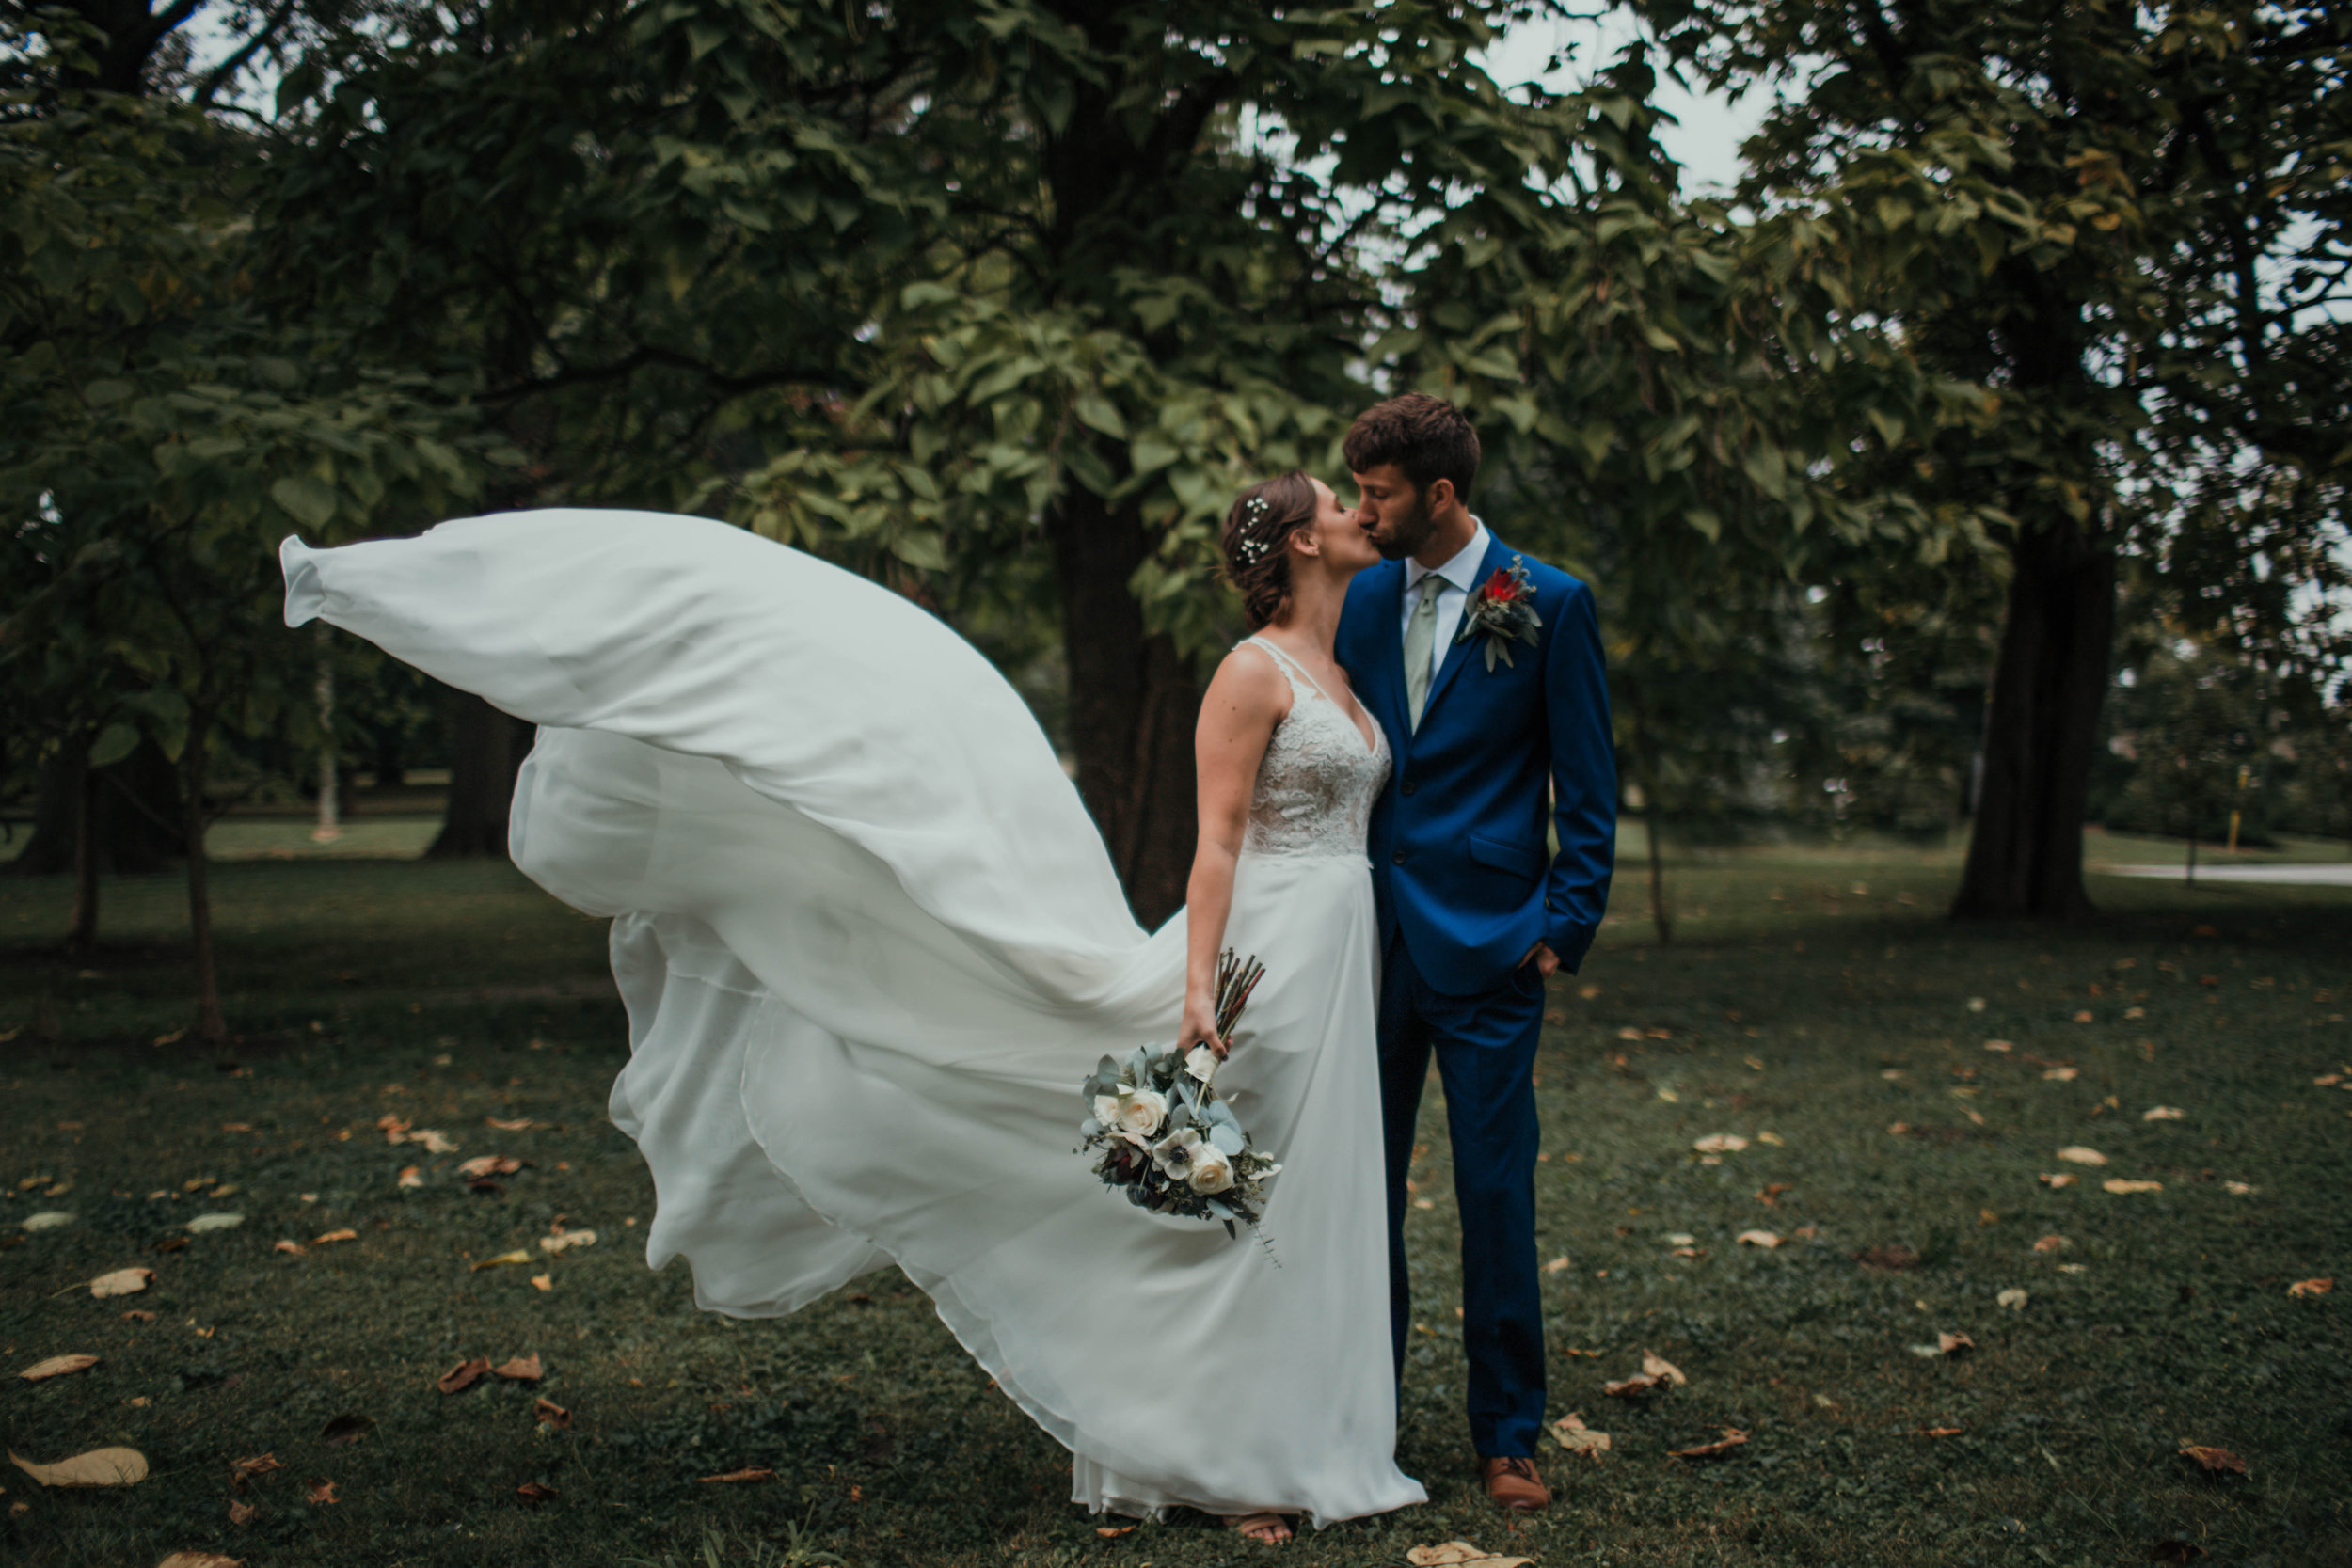 couple kisses while the bride's dress billows in the wind